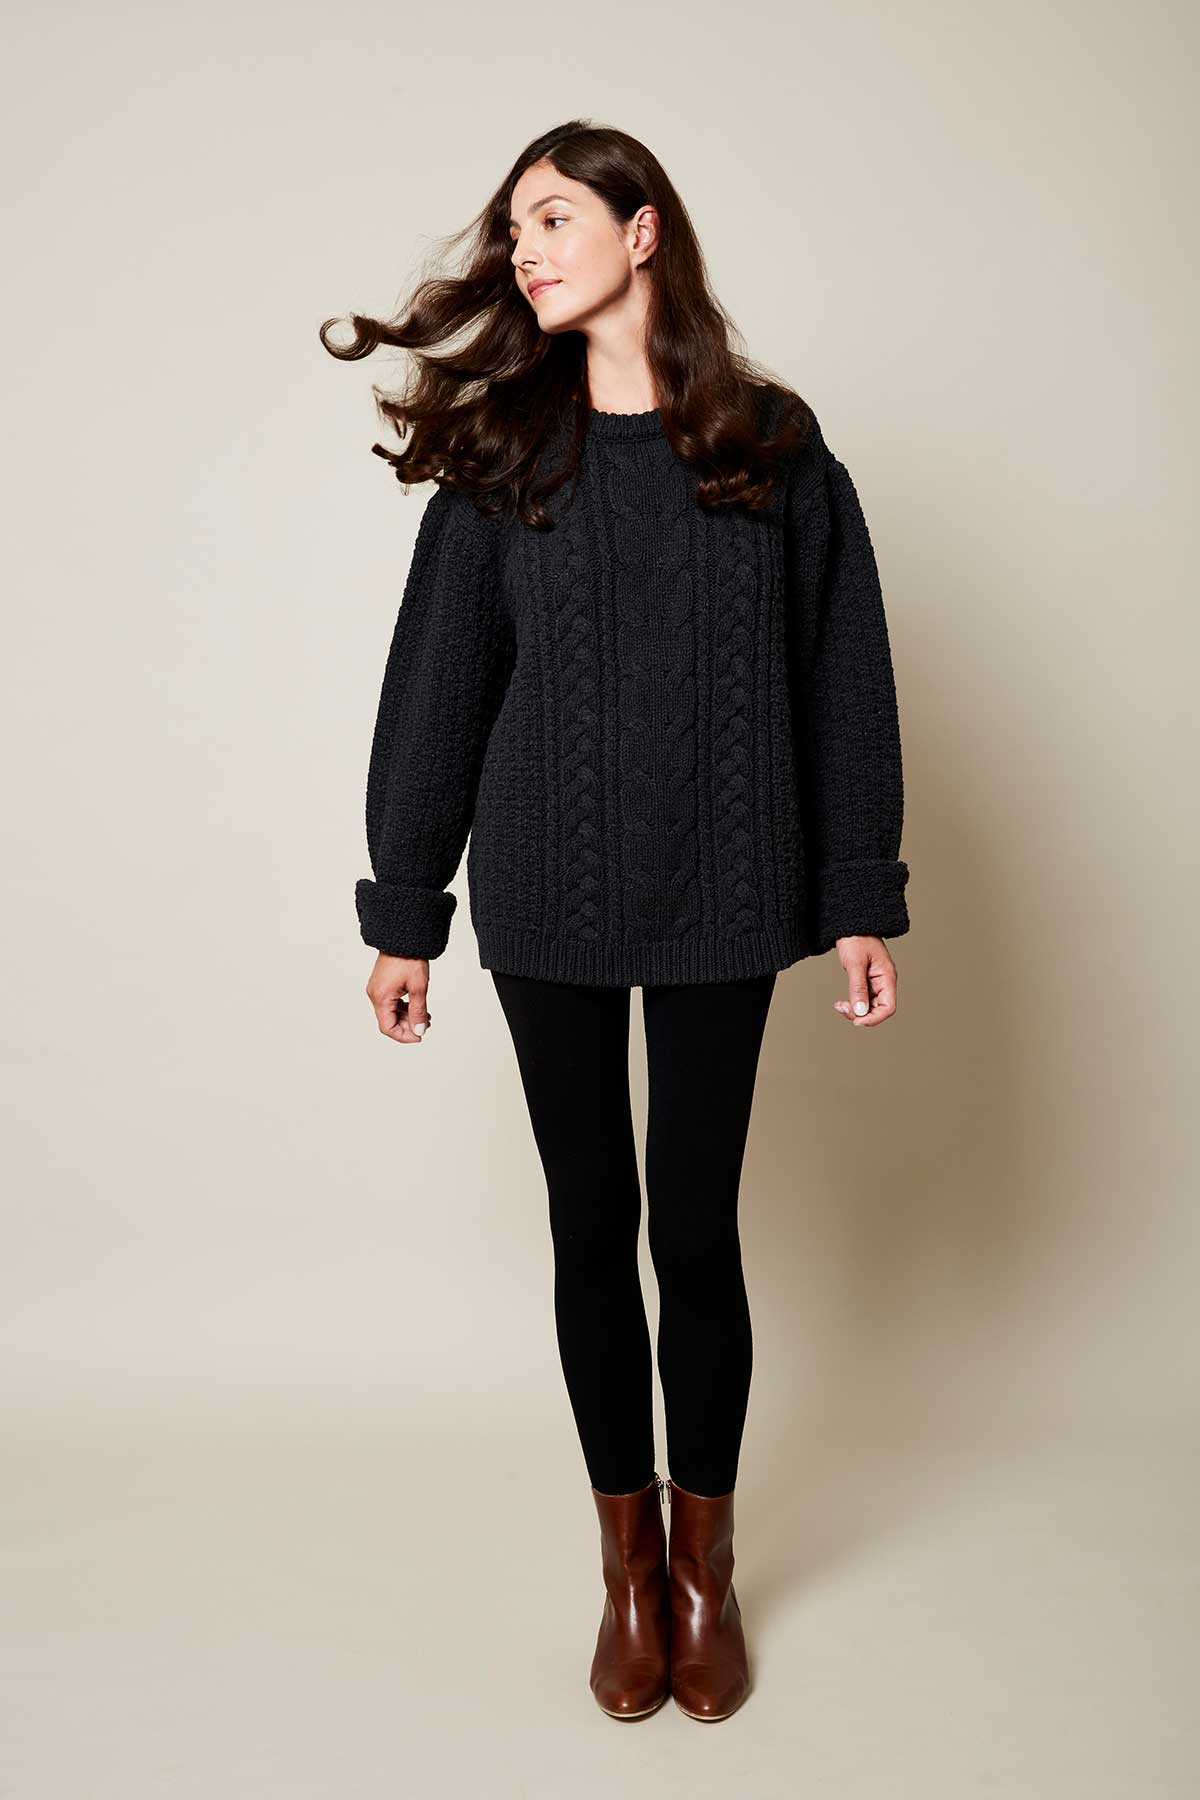 The Aran Sweater